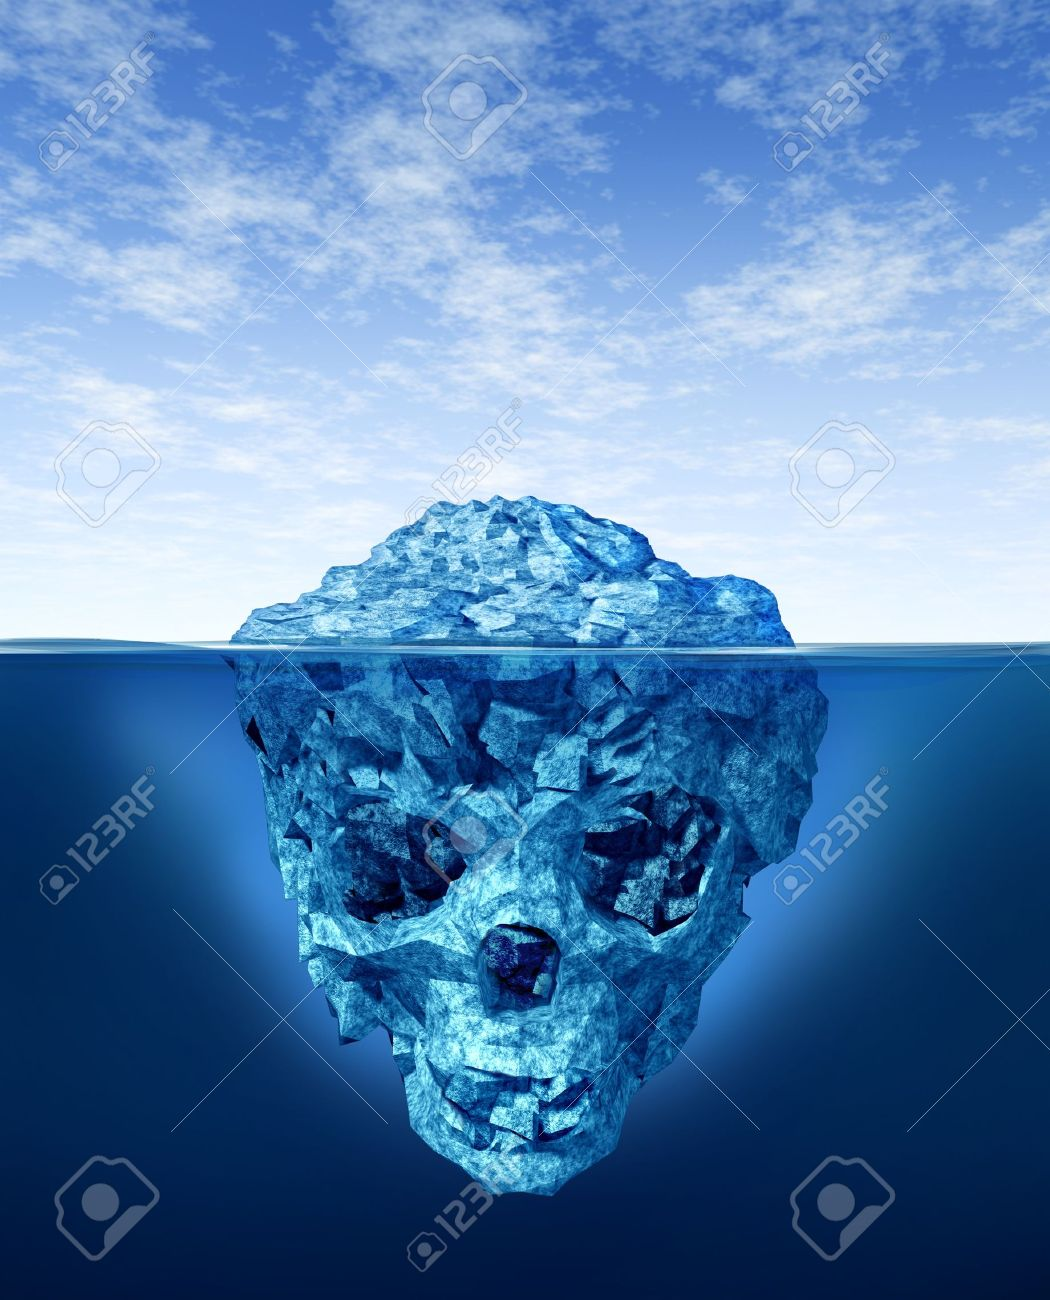 Hidden dangers with a deceptive hazardous iceberg floating in cold arctic ocean water with a small part of the frozen ice mountain above the sea and the hidden bottom part in the shape of a death human skull skeleton. Stock Photo - 12082739